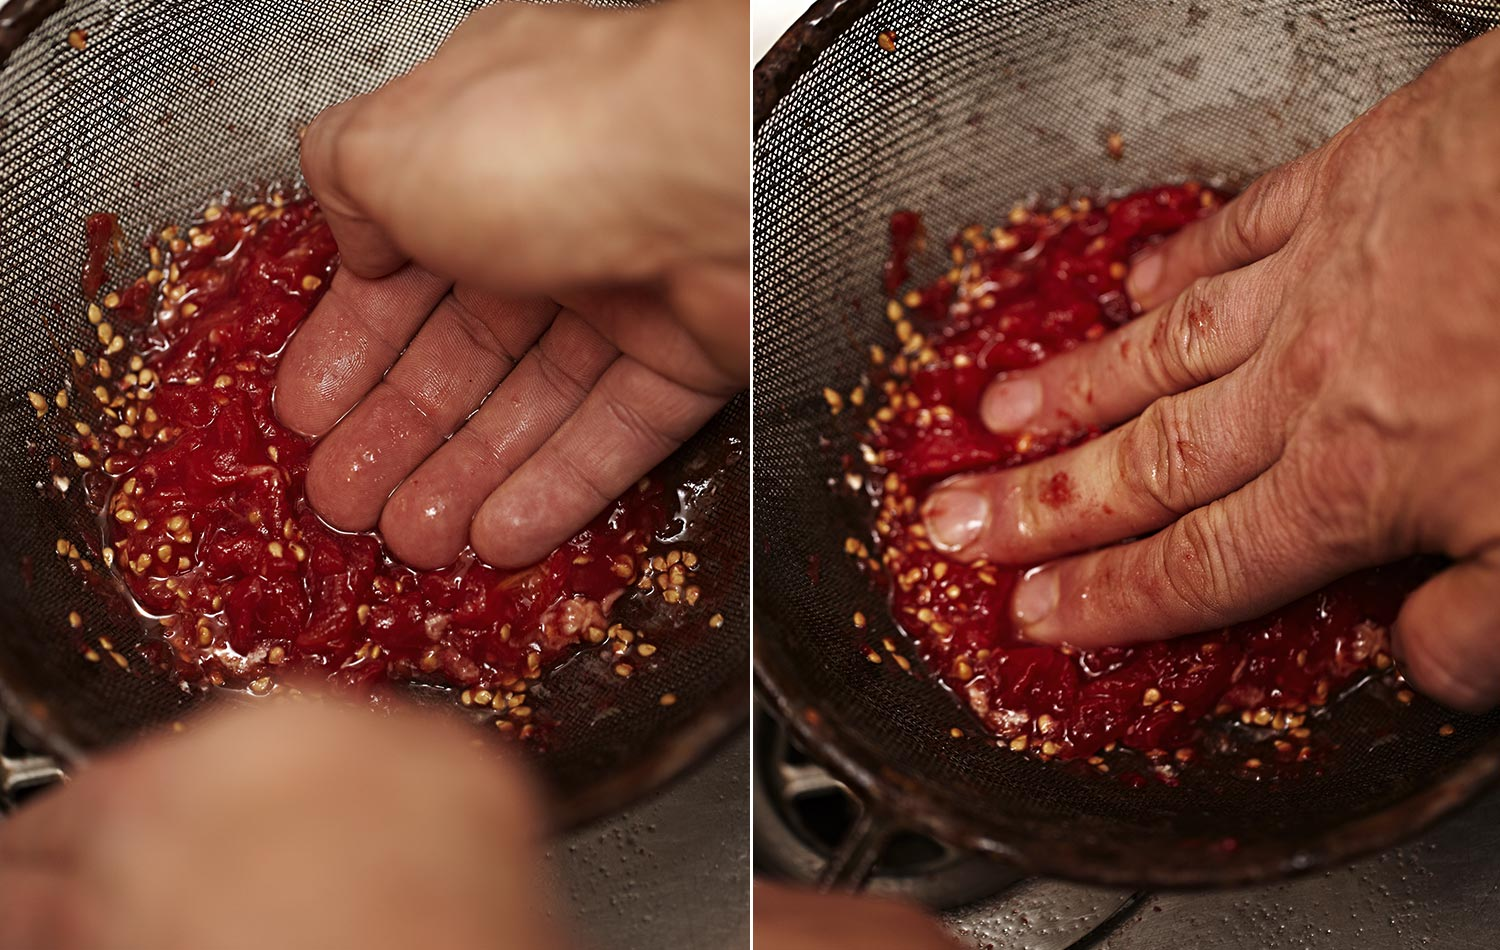 Get stuck right in and push the pulp through the sieve. It's fun. Kids will love it, they love the muckiness of it.